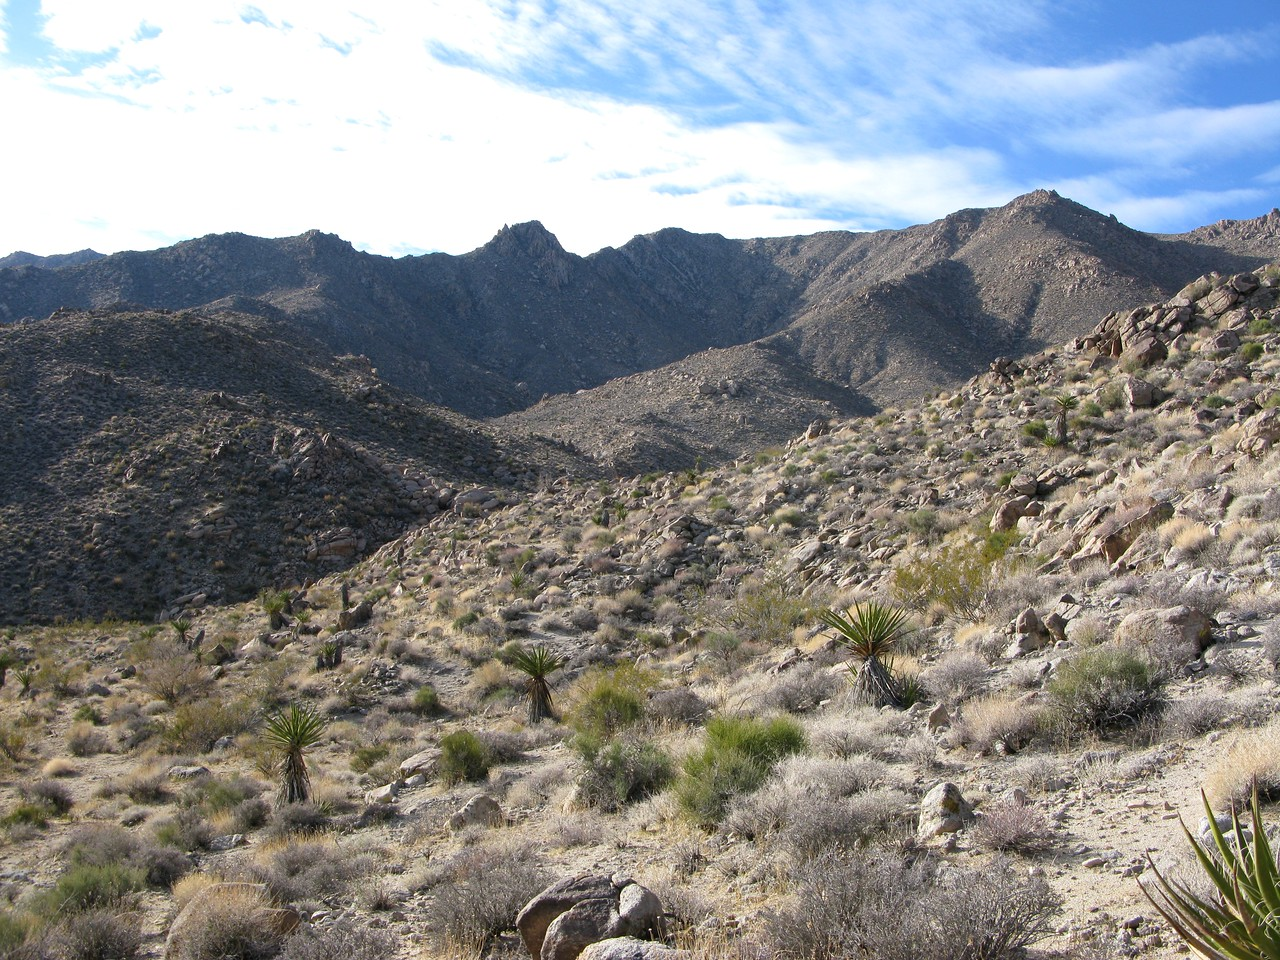 From the distance I could see that the easy sloping terrain would soon give way to rocky gulleys and dry washes.